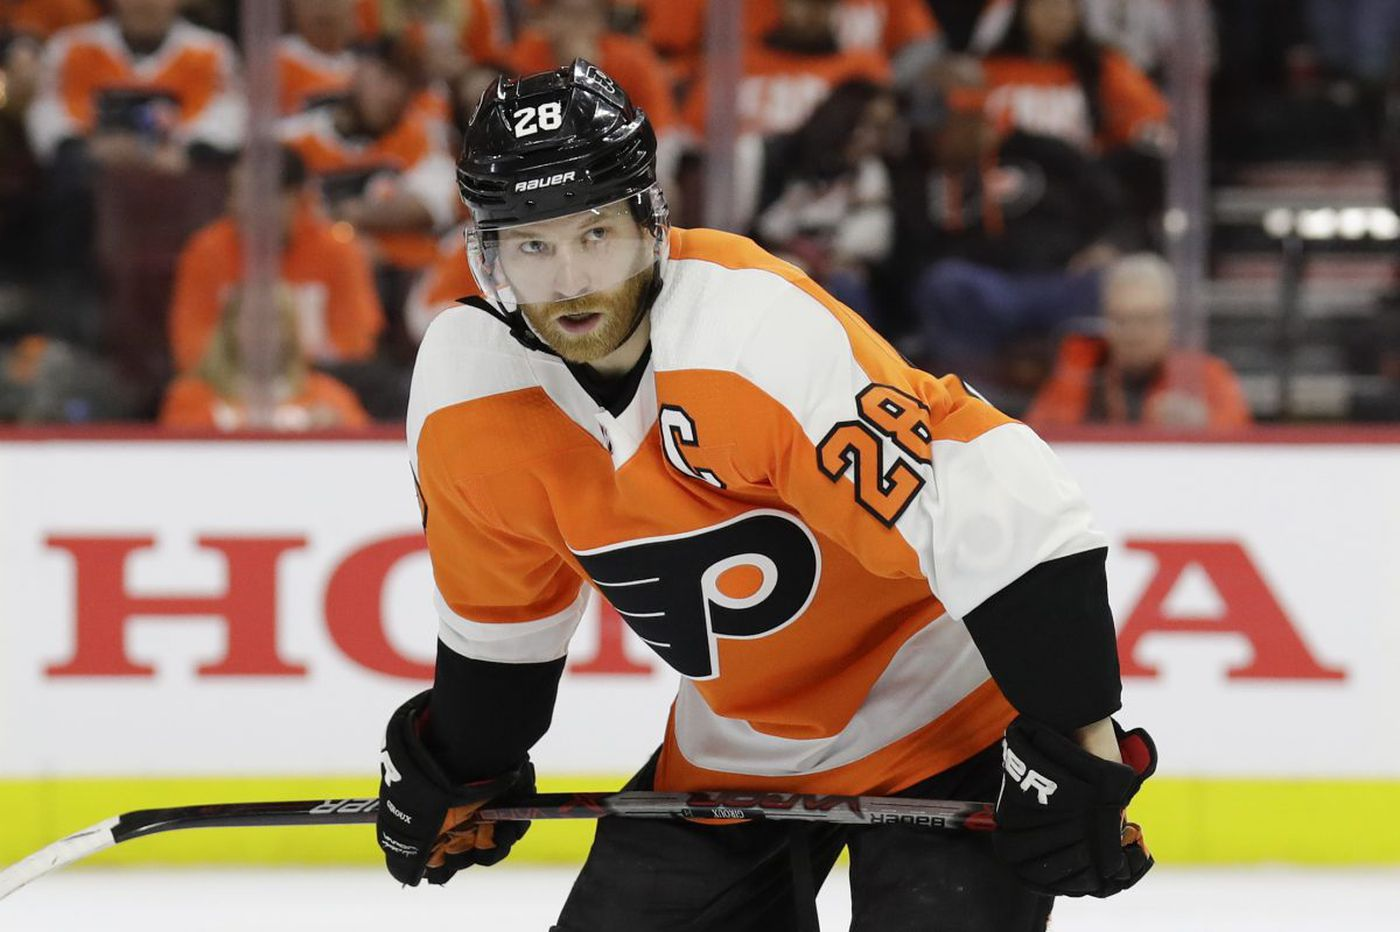 Flyers' Claude Giroux snubbed in MVP vote despite high point total